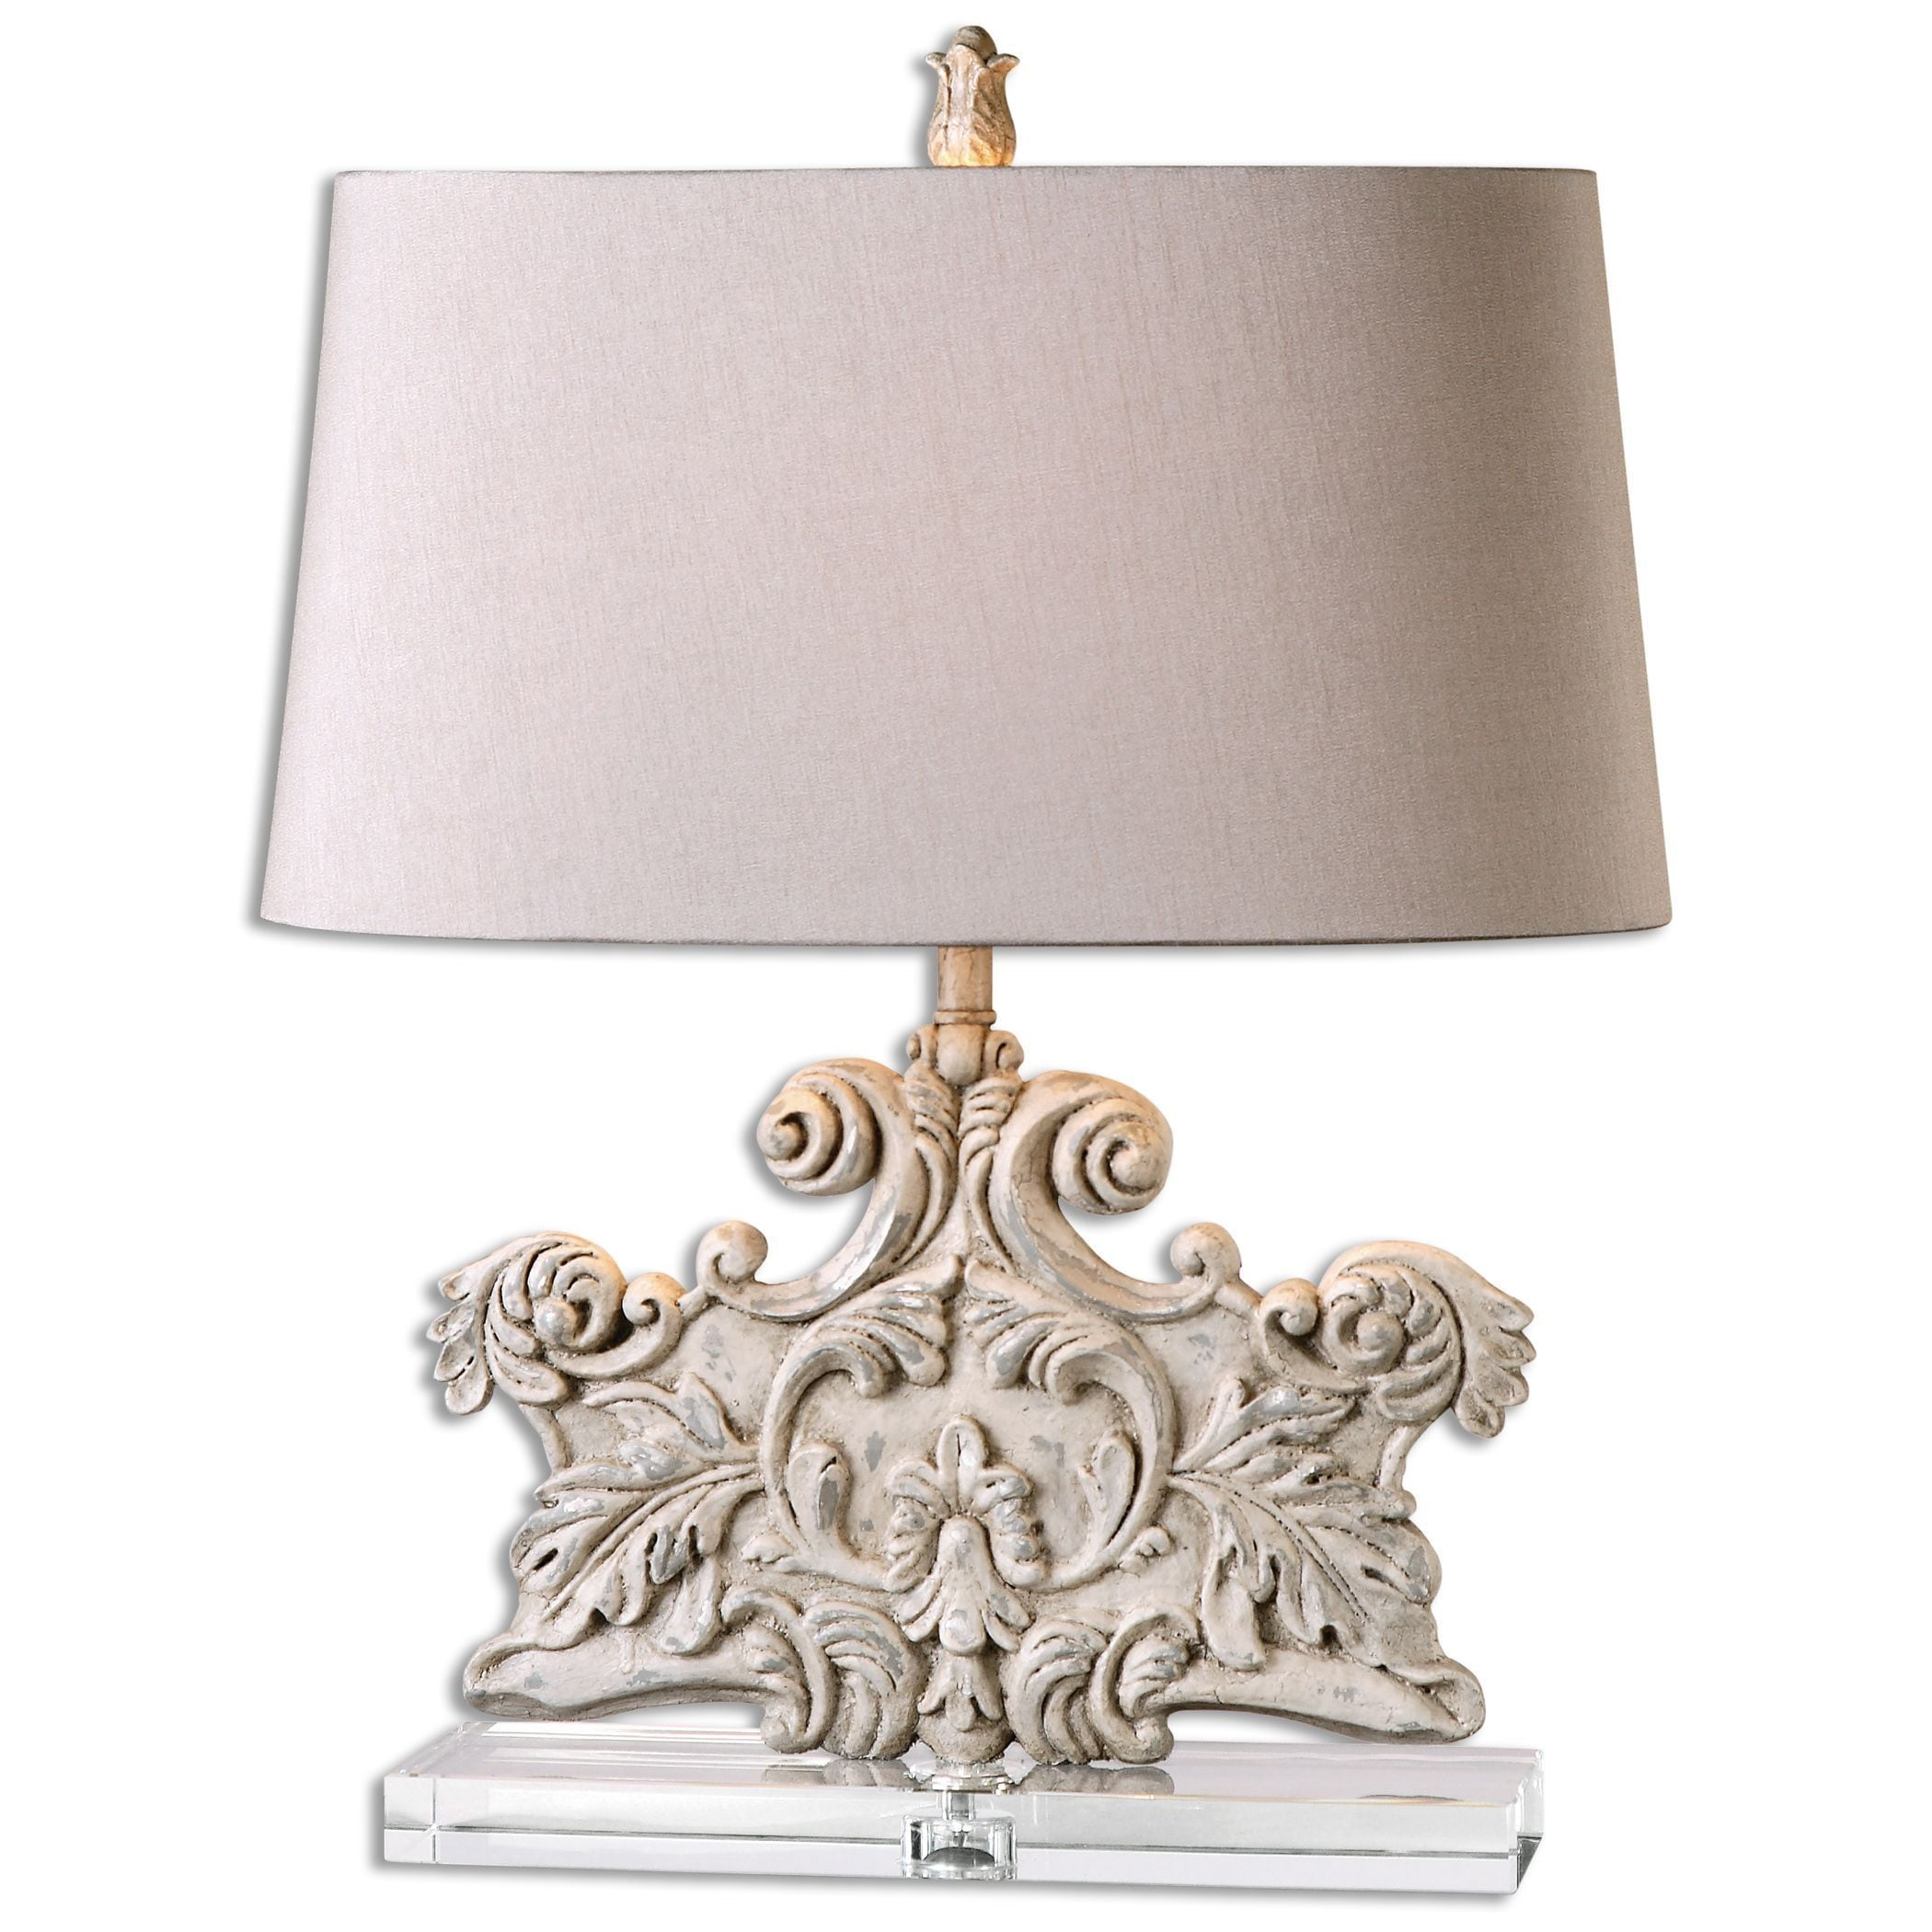 Shop uttermost 1 light stone ivory table lamp free shipping today shop uttermost 1 light stone ivory table lamp free shipping today overstock 9721442 aloadofball Images